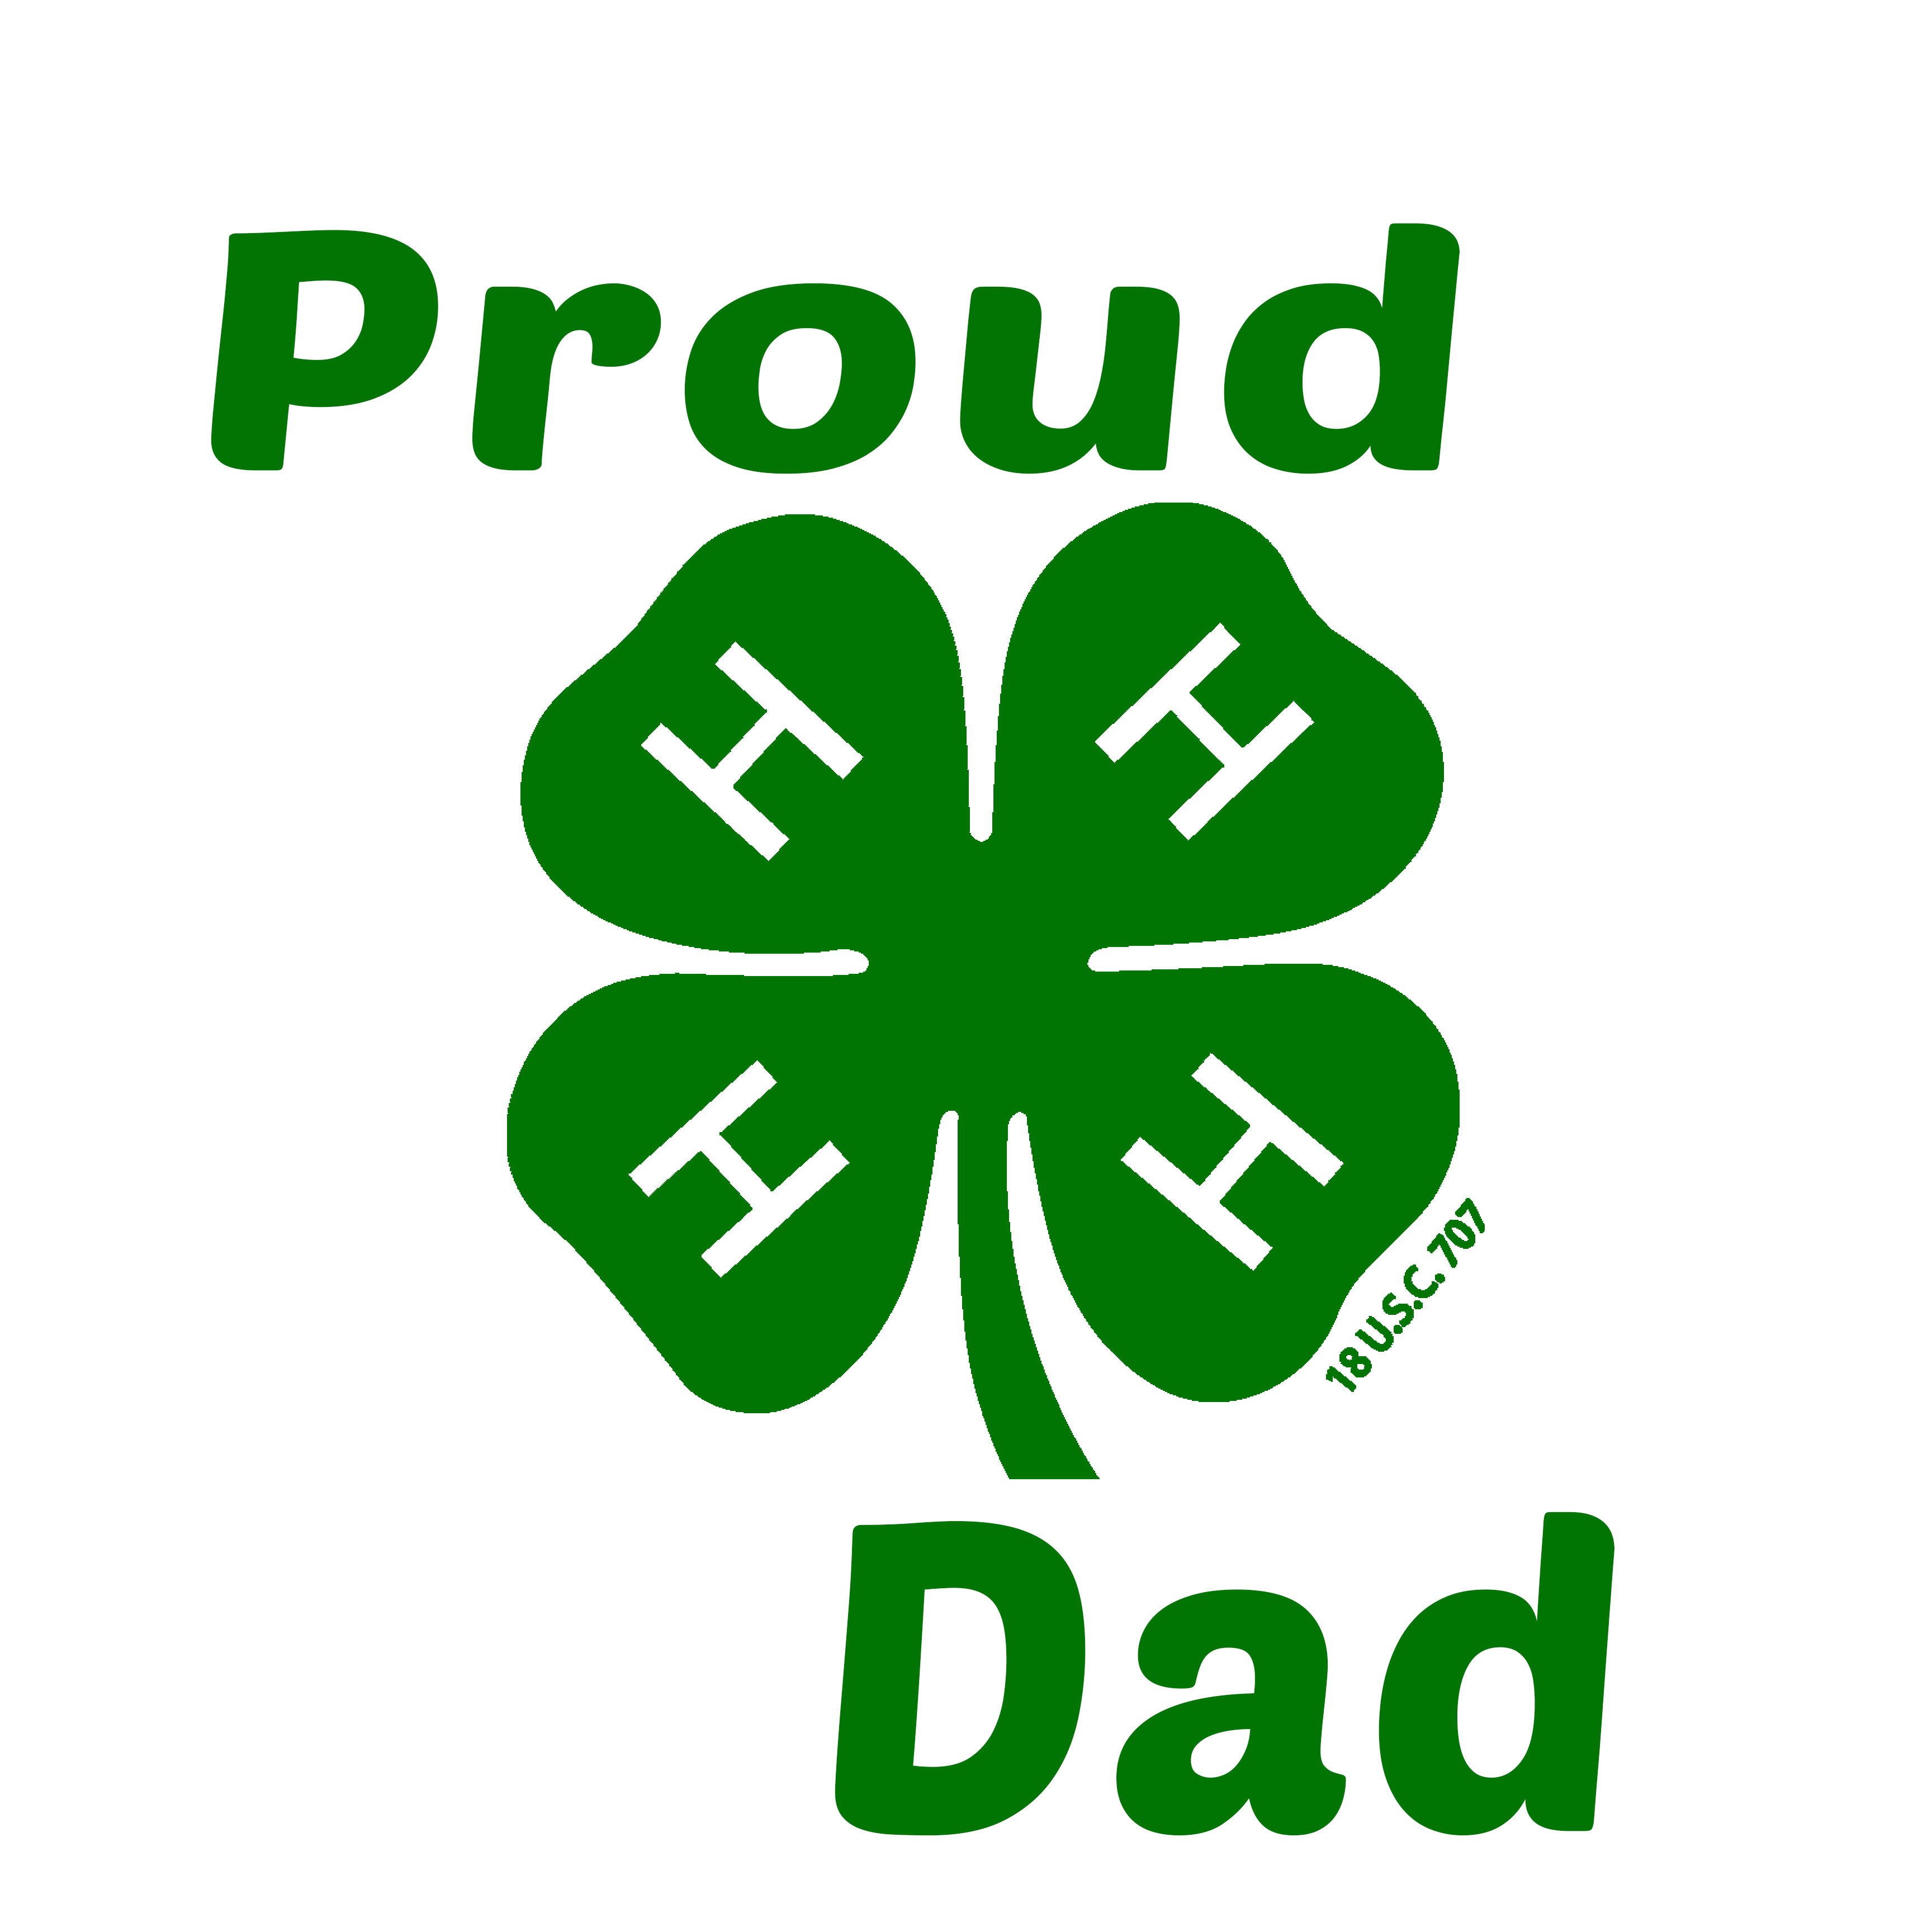 Proud_Dad_Proof_2_green_with_white_background_7-31-13